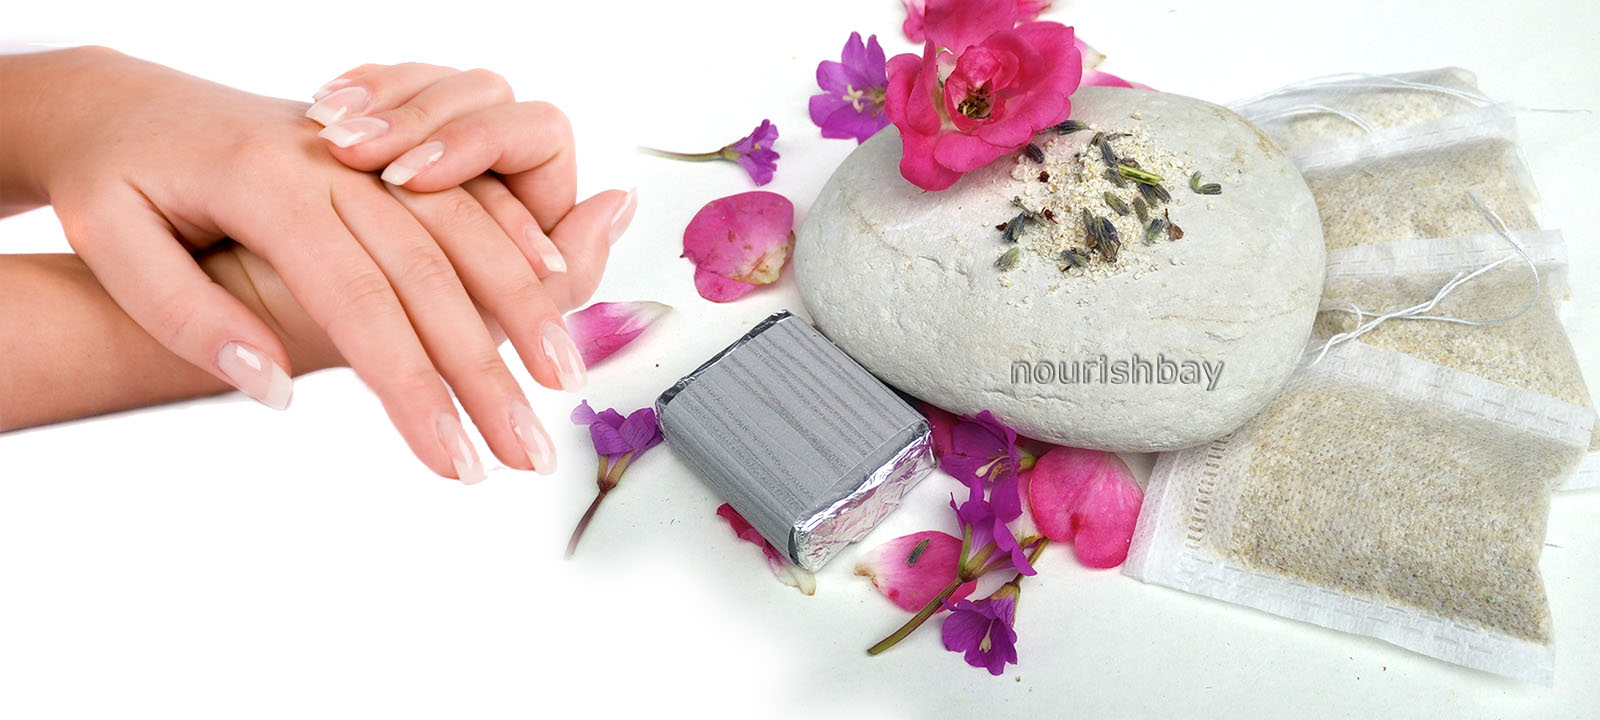 Natural hand care